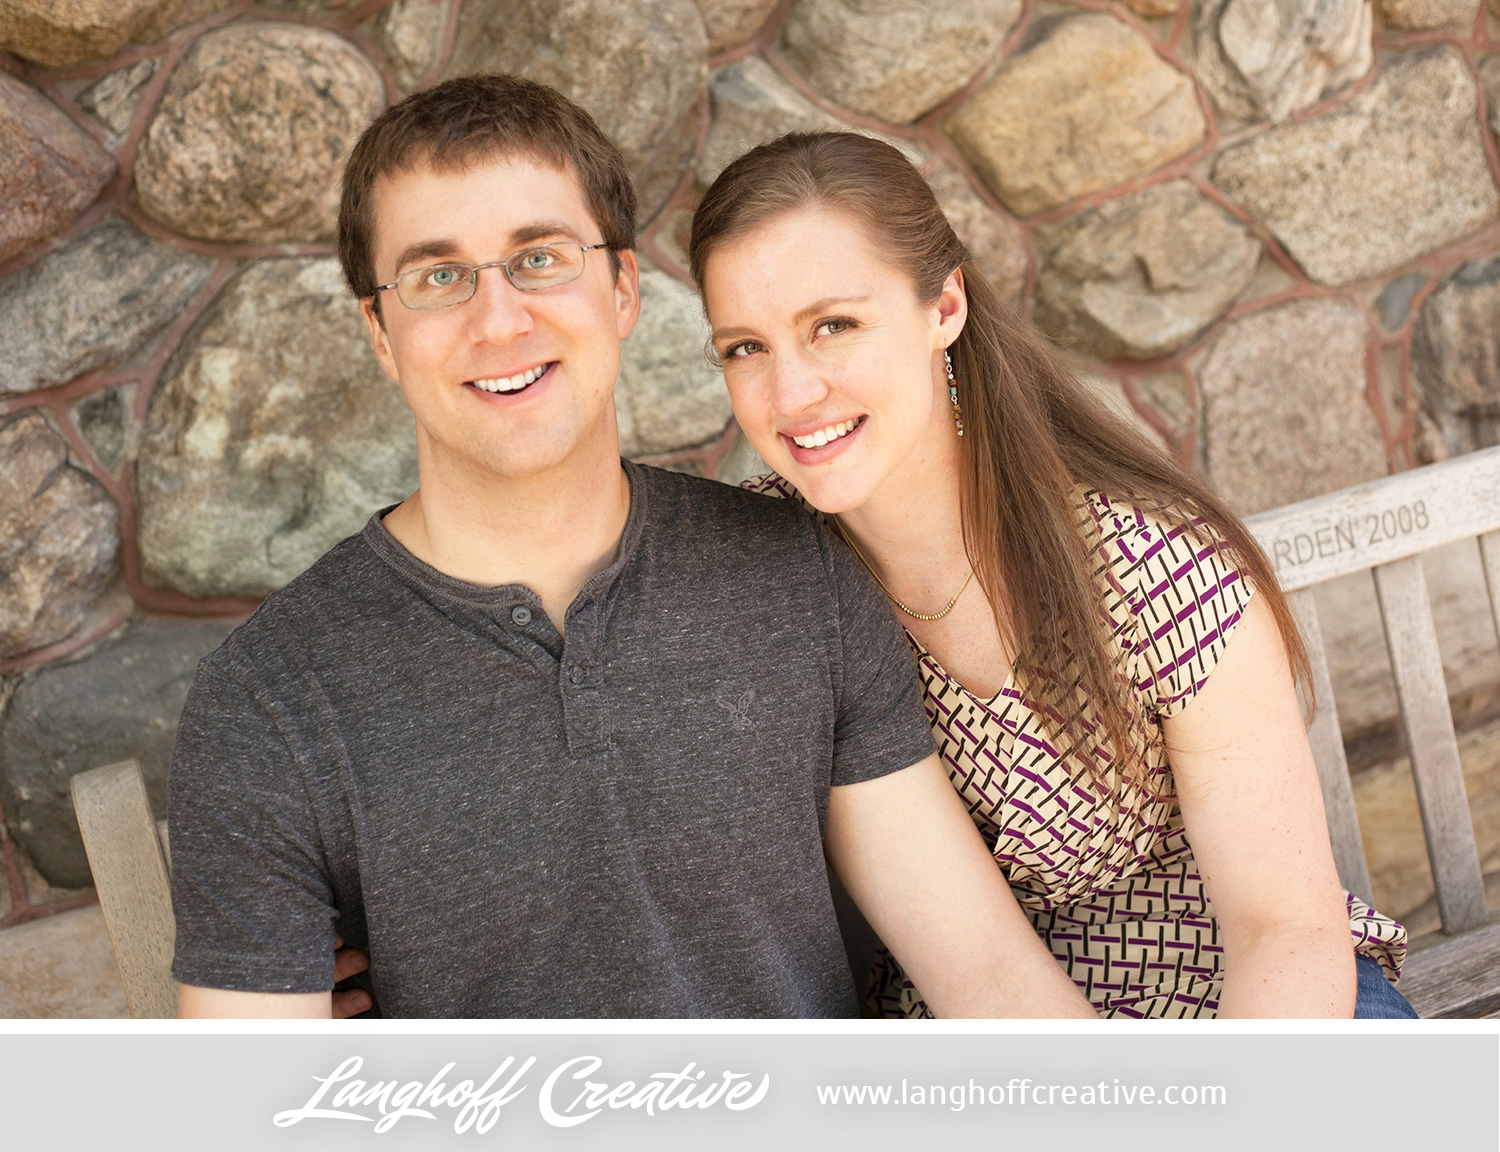 ChicagoEngagement-LincolnParkZoo-Engaged-LanghoffCreative-DestinationWeddingPhotographers-2014-ZacRachel-5-photo.jpg